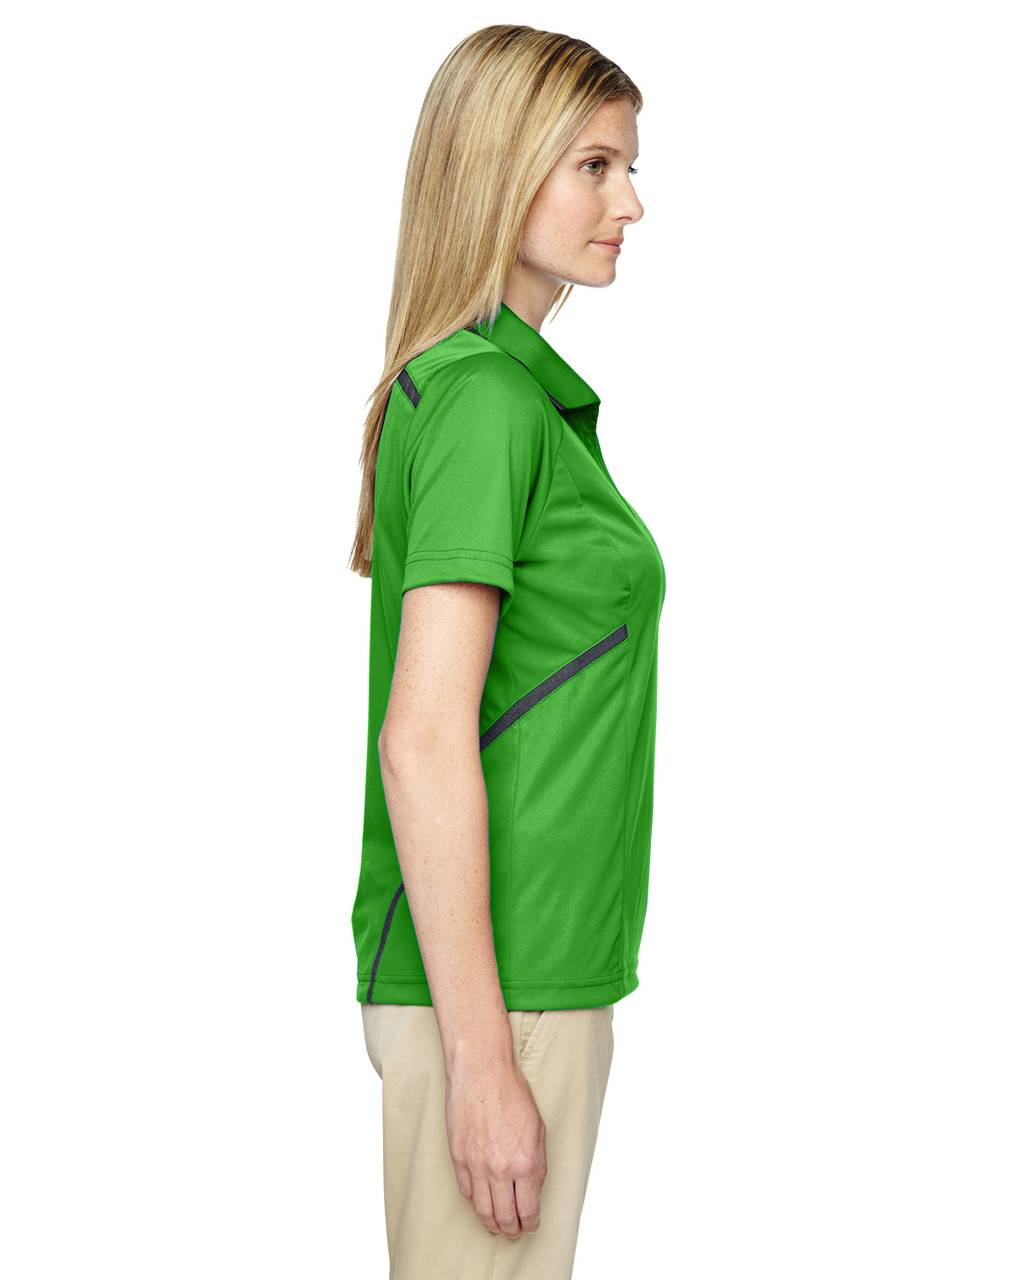 Valley Green - Side, 75118 Ash City - Extreme Eperformance Propel Interlock Polo Shirt with Contrast Tape   BlankClothing.ca